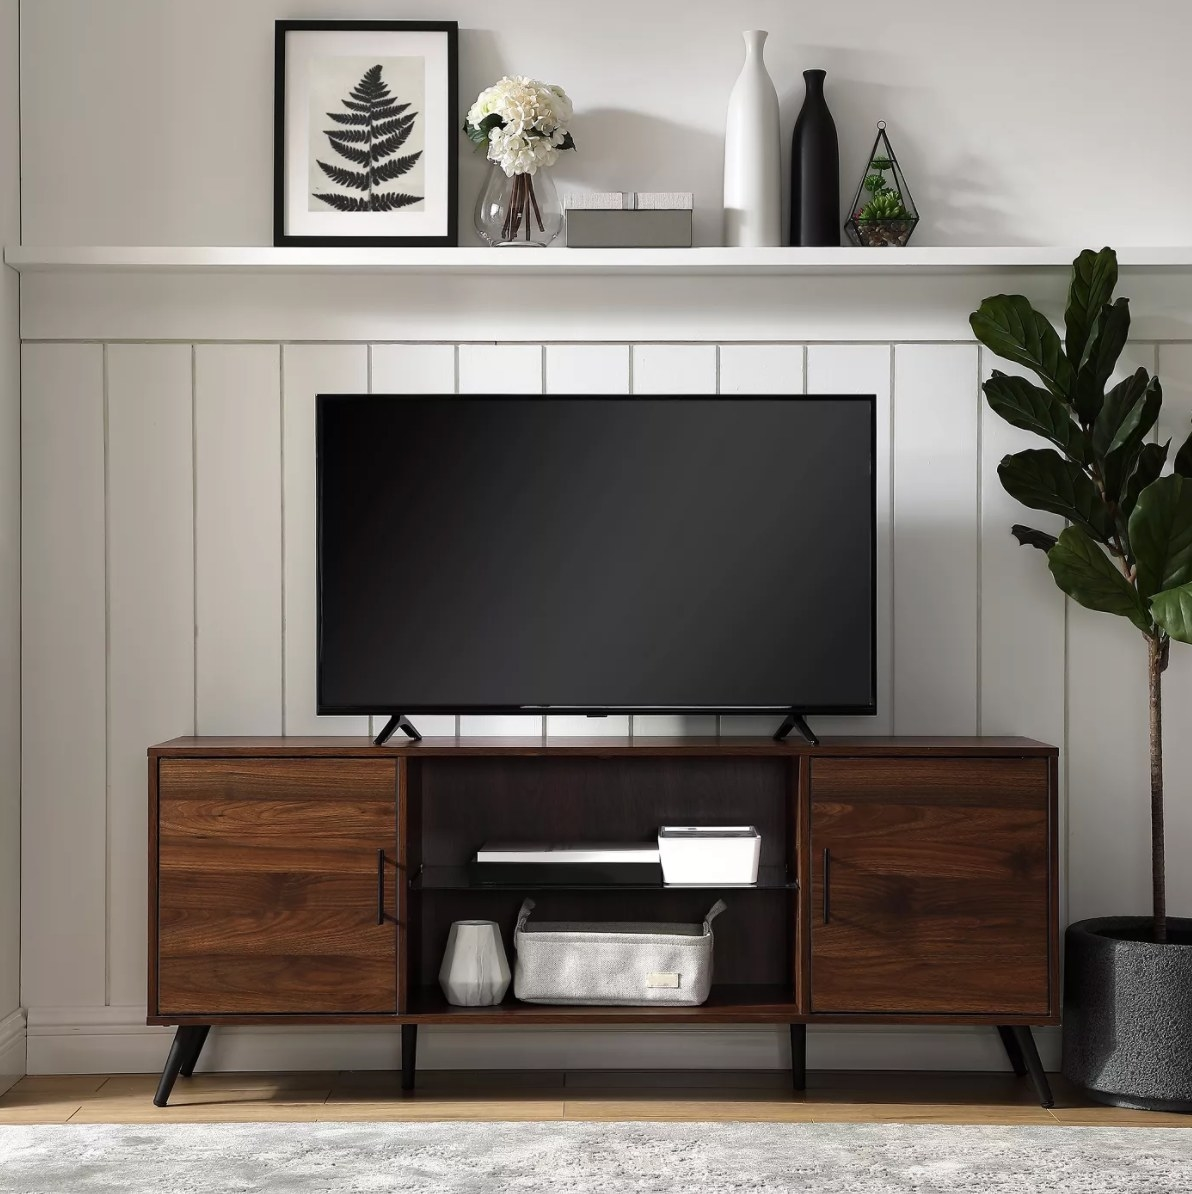 The midcentury wood console with a glass center